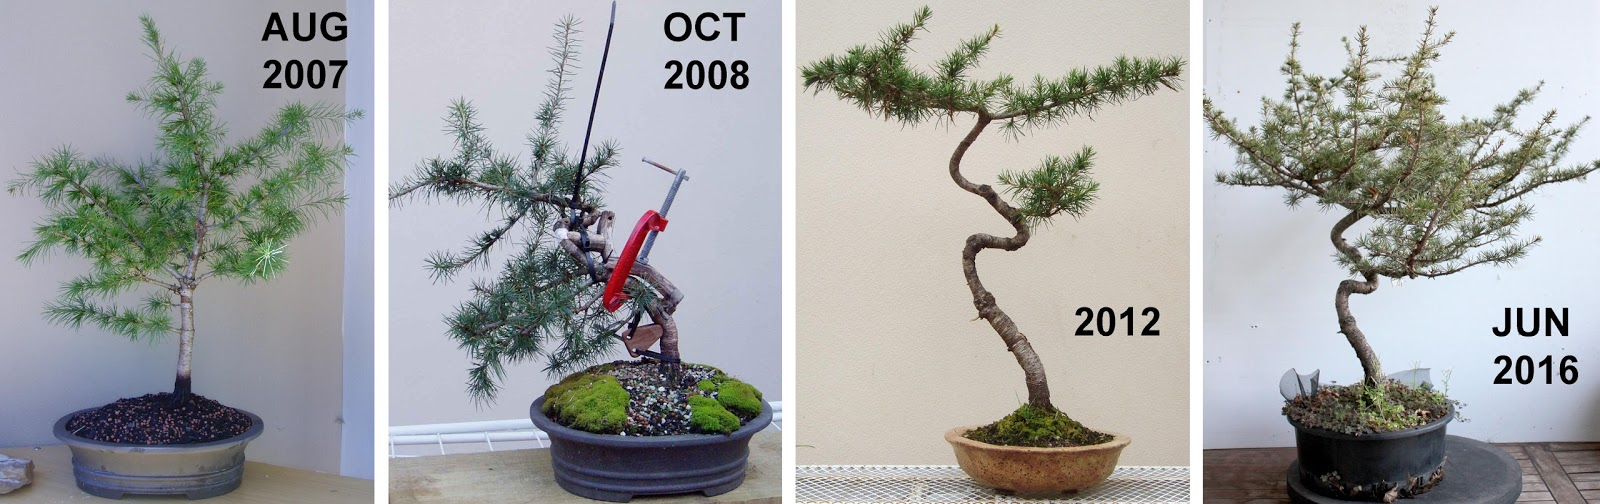 Kigawa39s Bonsai Blog